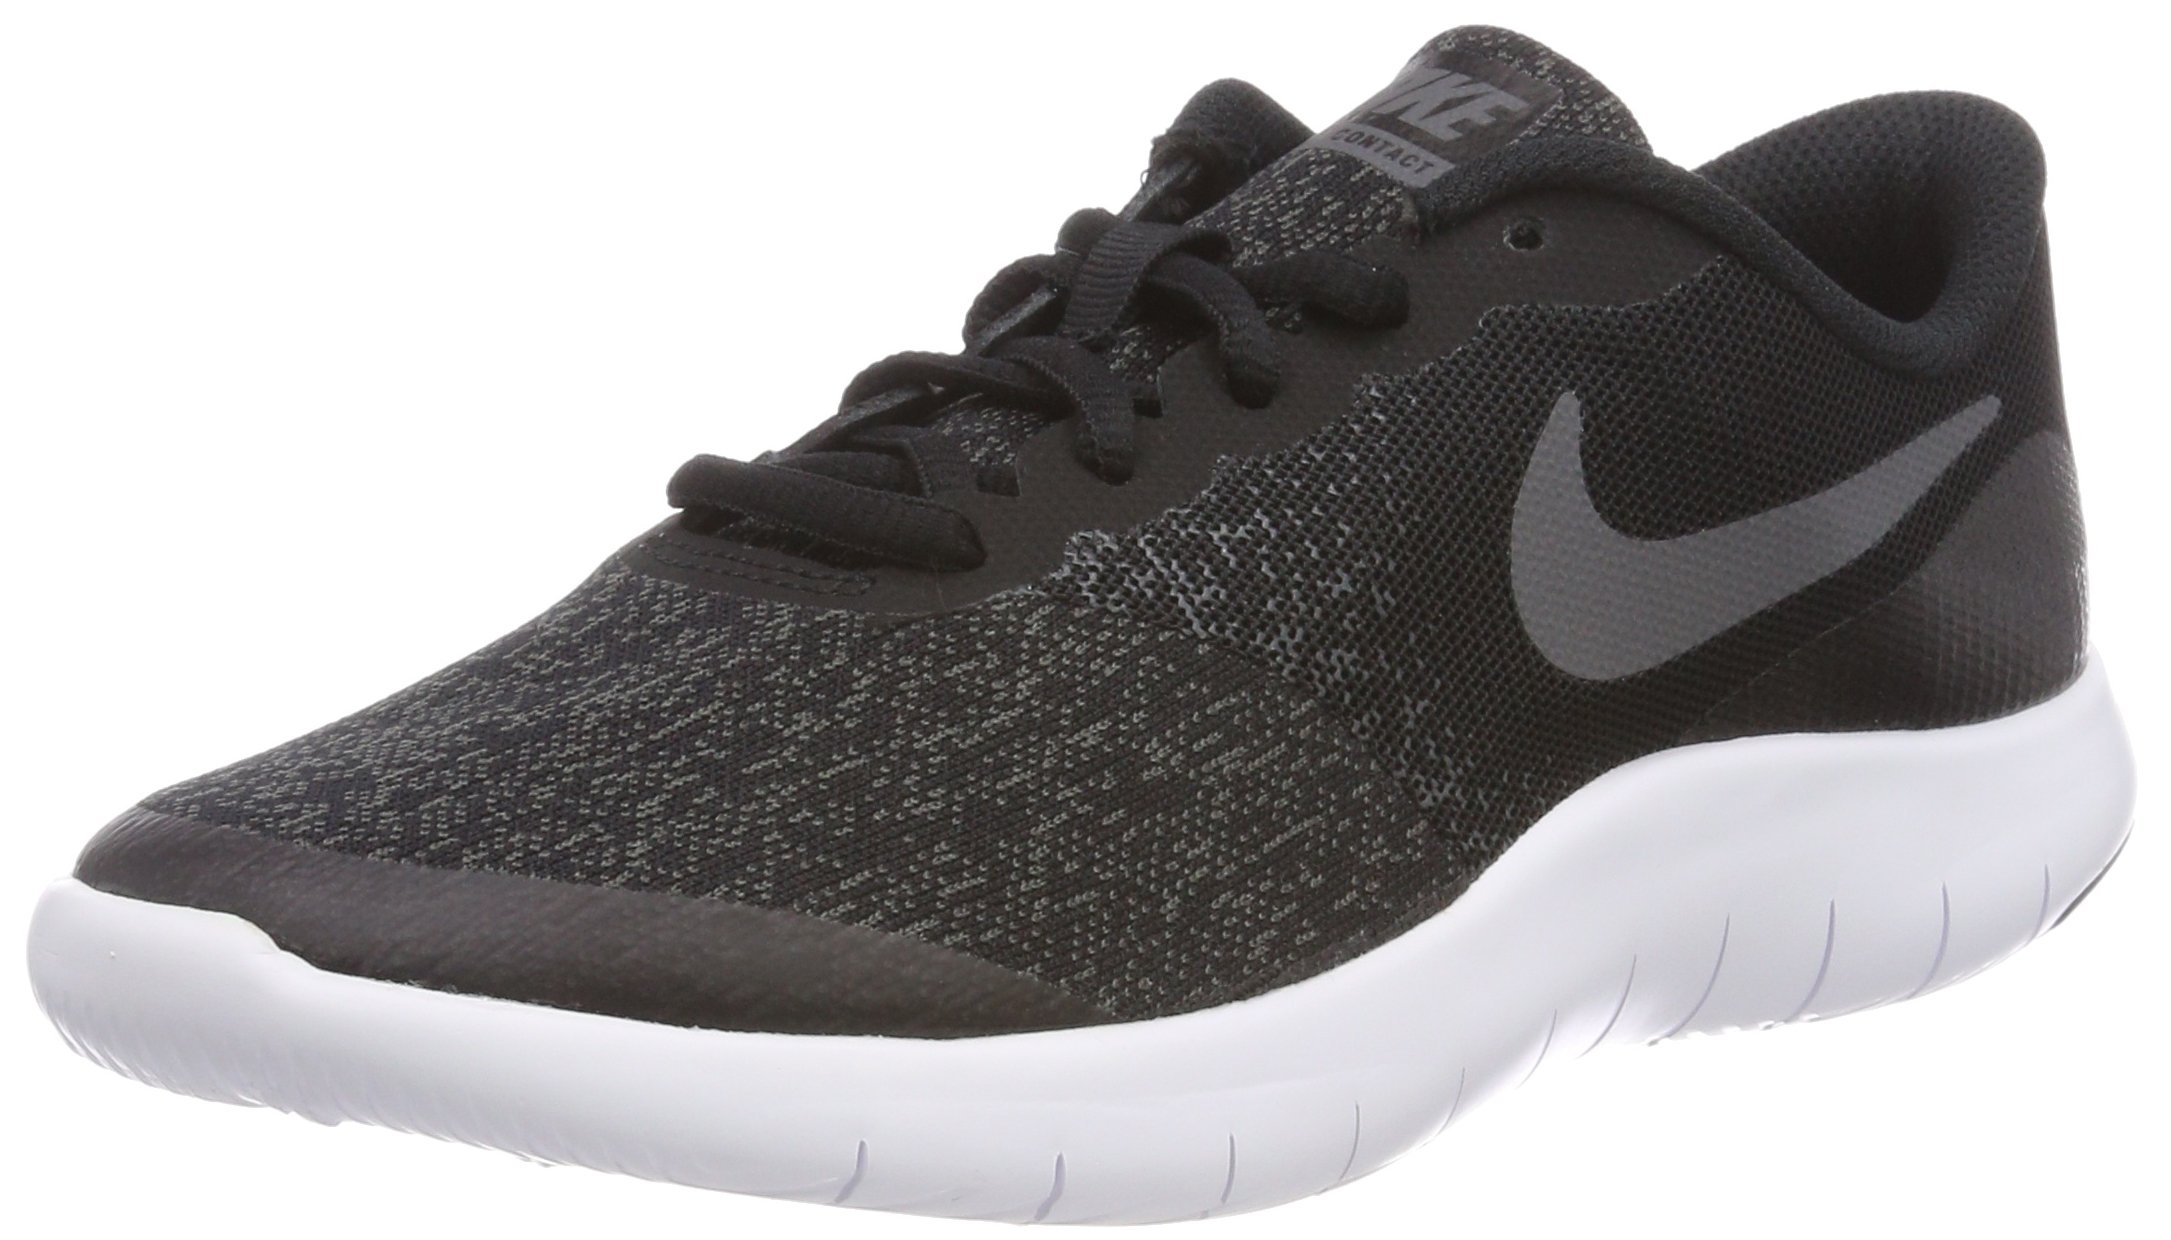 Nike Kids Flex Contact (GS) Running Shoes (4.5 Big Kid M, Black Drk Gry Anthracite White) by Nike